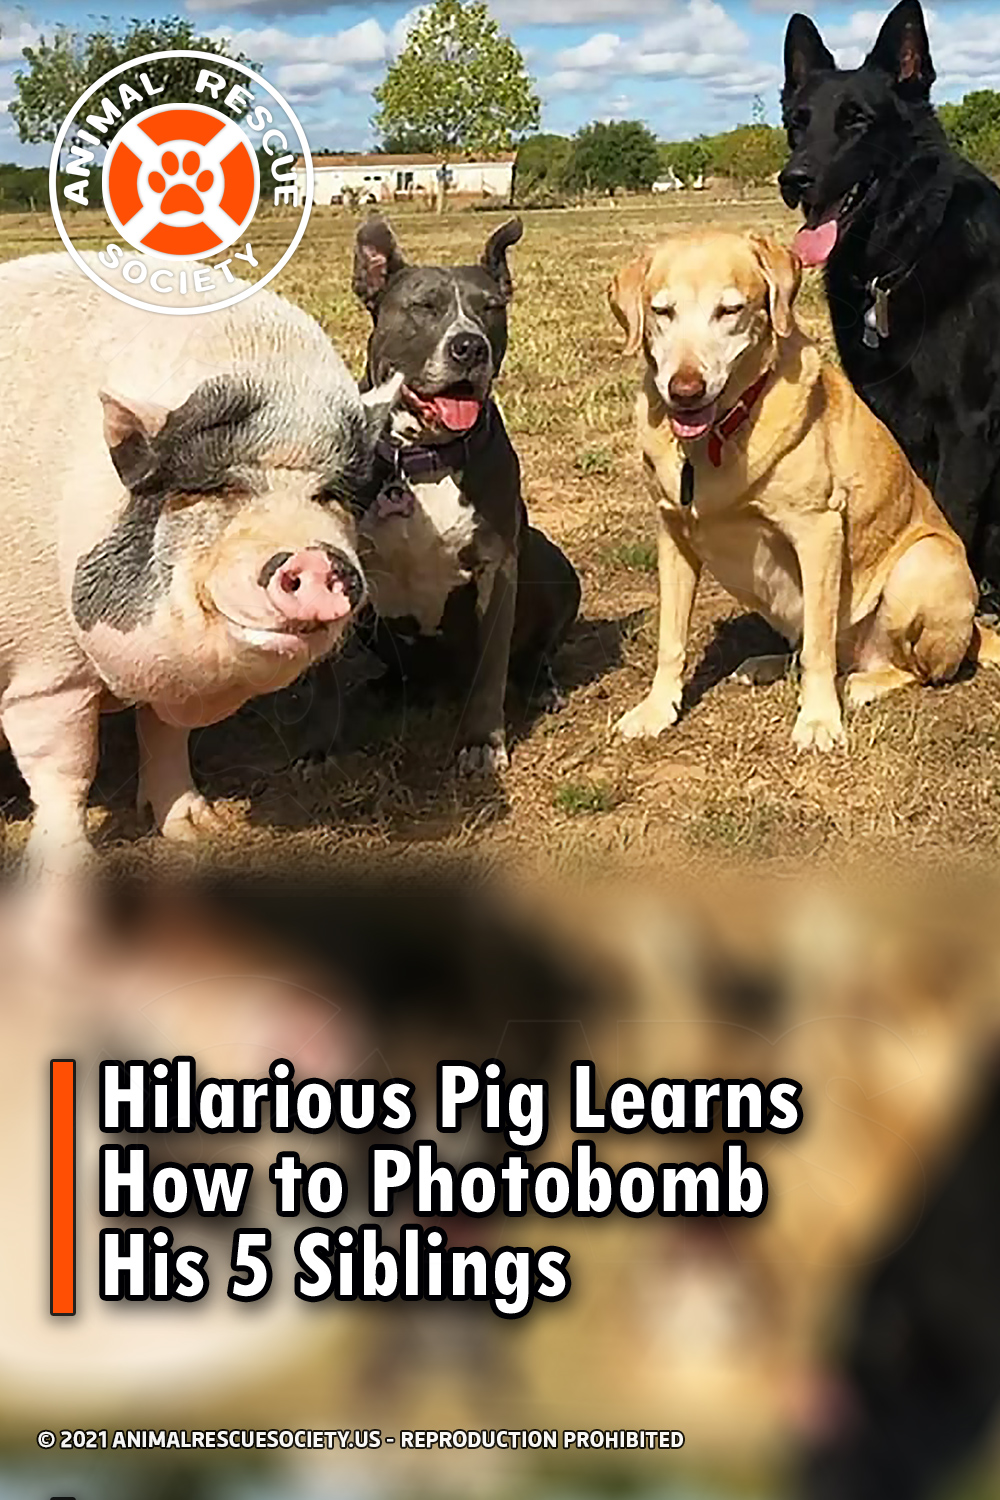 Hilarious Pig Learns How to Photobomb His 5 Siblings